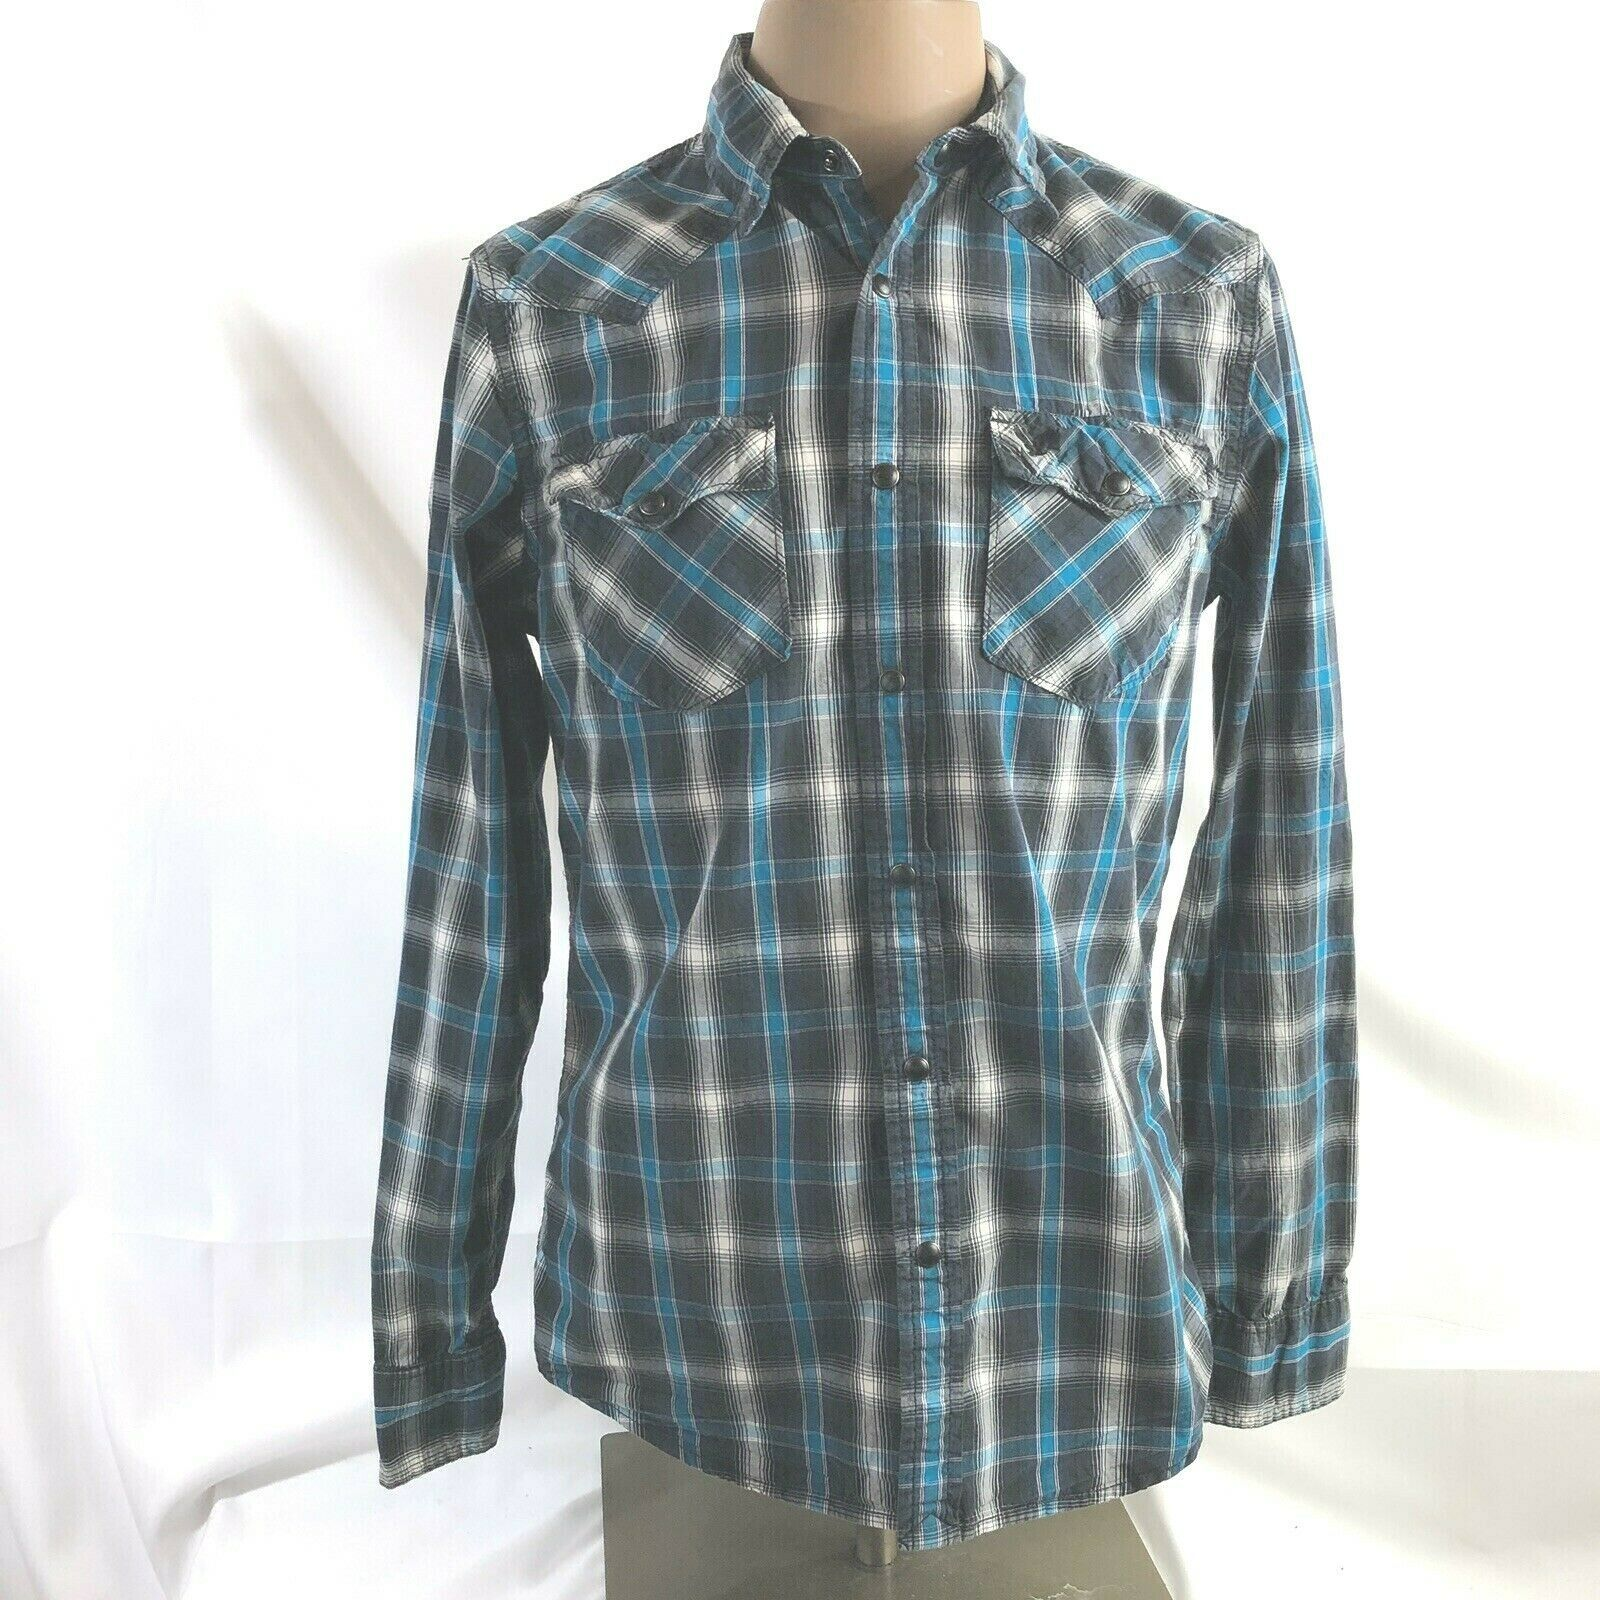 Primary image for American Eagle Outfitters Mens Plaid Pearl Snaps Shirt Small Black Blue